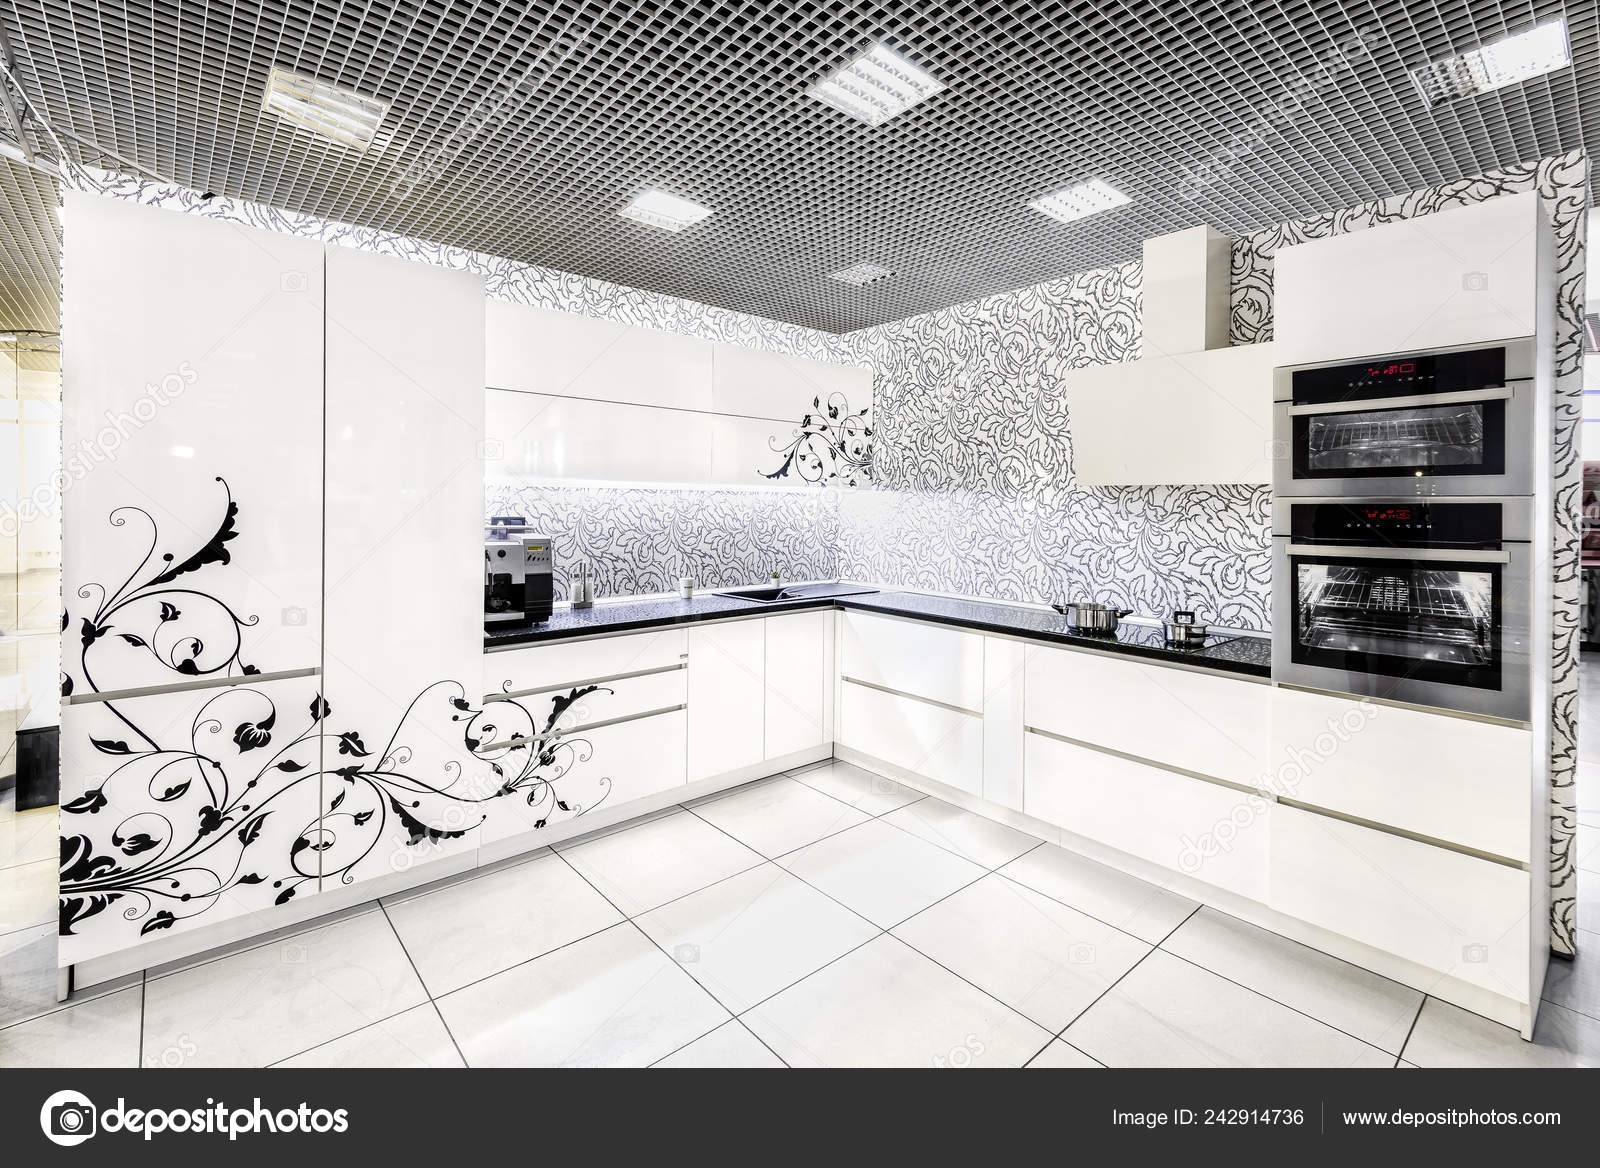 Picture Painted Kitchen Cabinets Modern White Kitchen Furniture Painted Front Surface Material Used Manufacture Stock Photo C Akhte Si 242914736